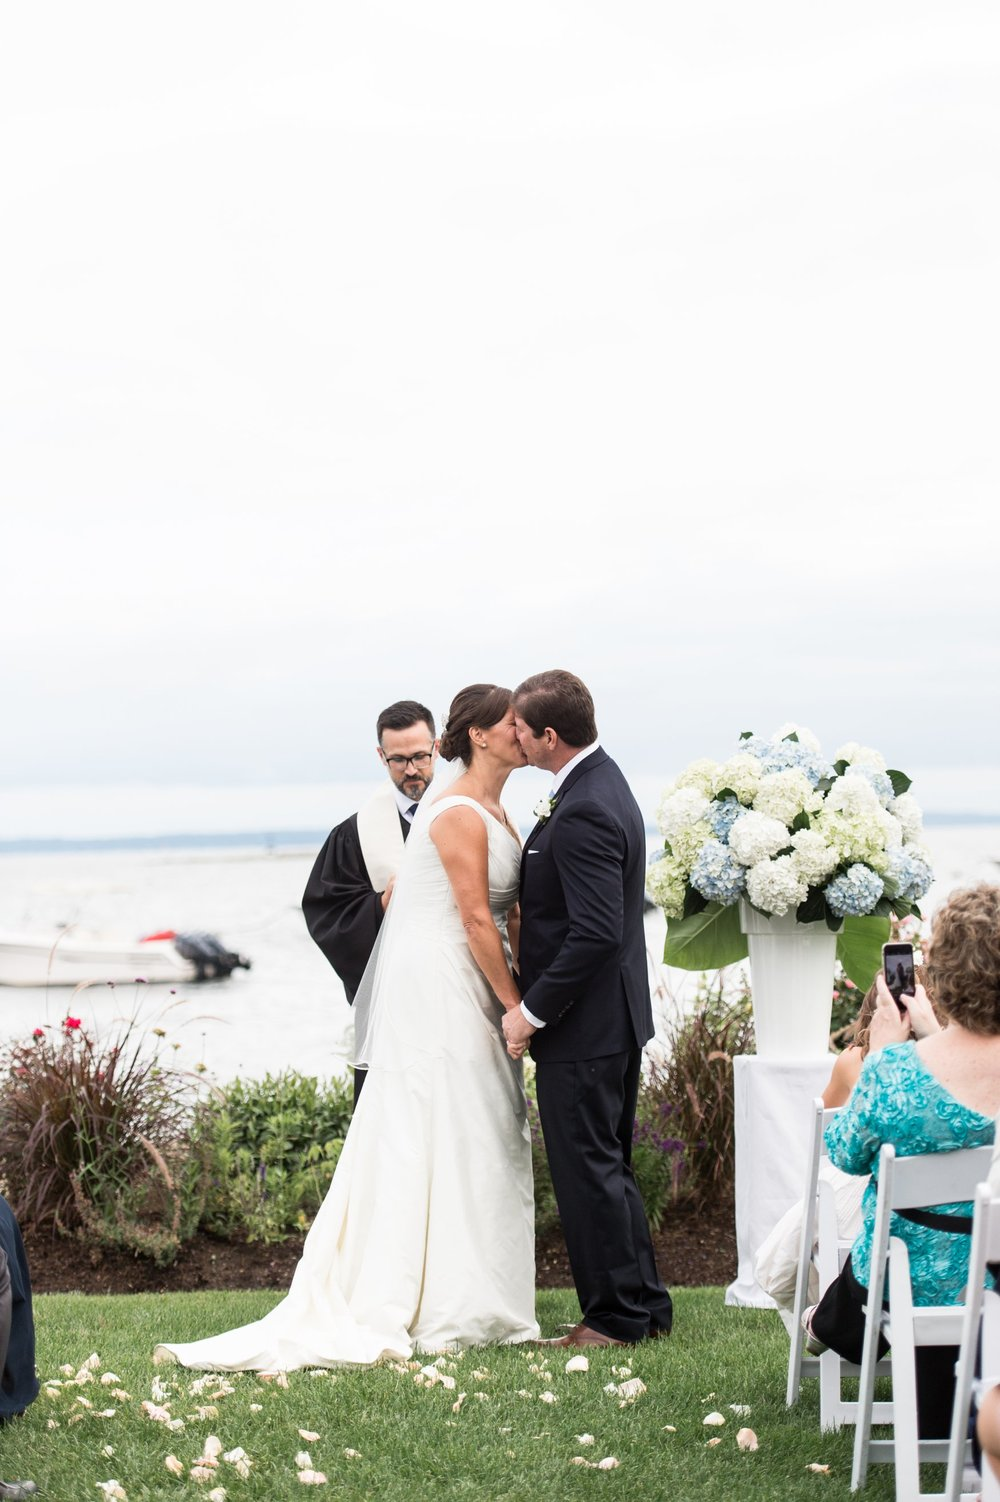 first kiss by bride and groom at wedding ceremony at Belle Haven Club in Greenwich CT